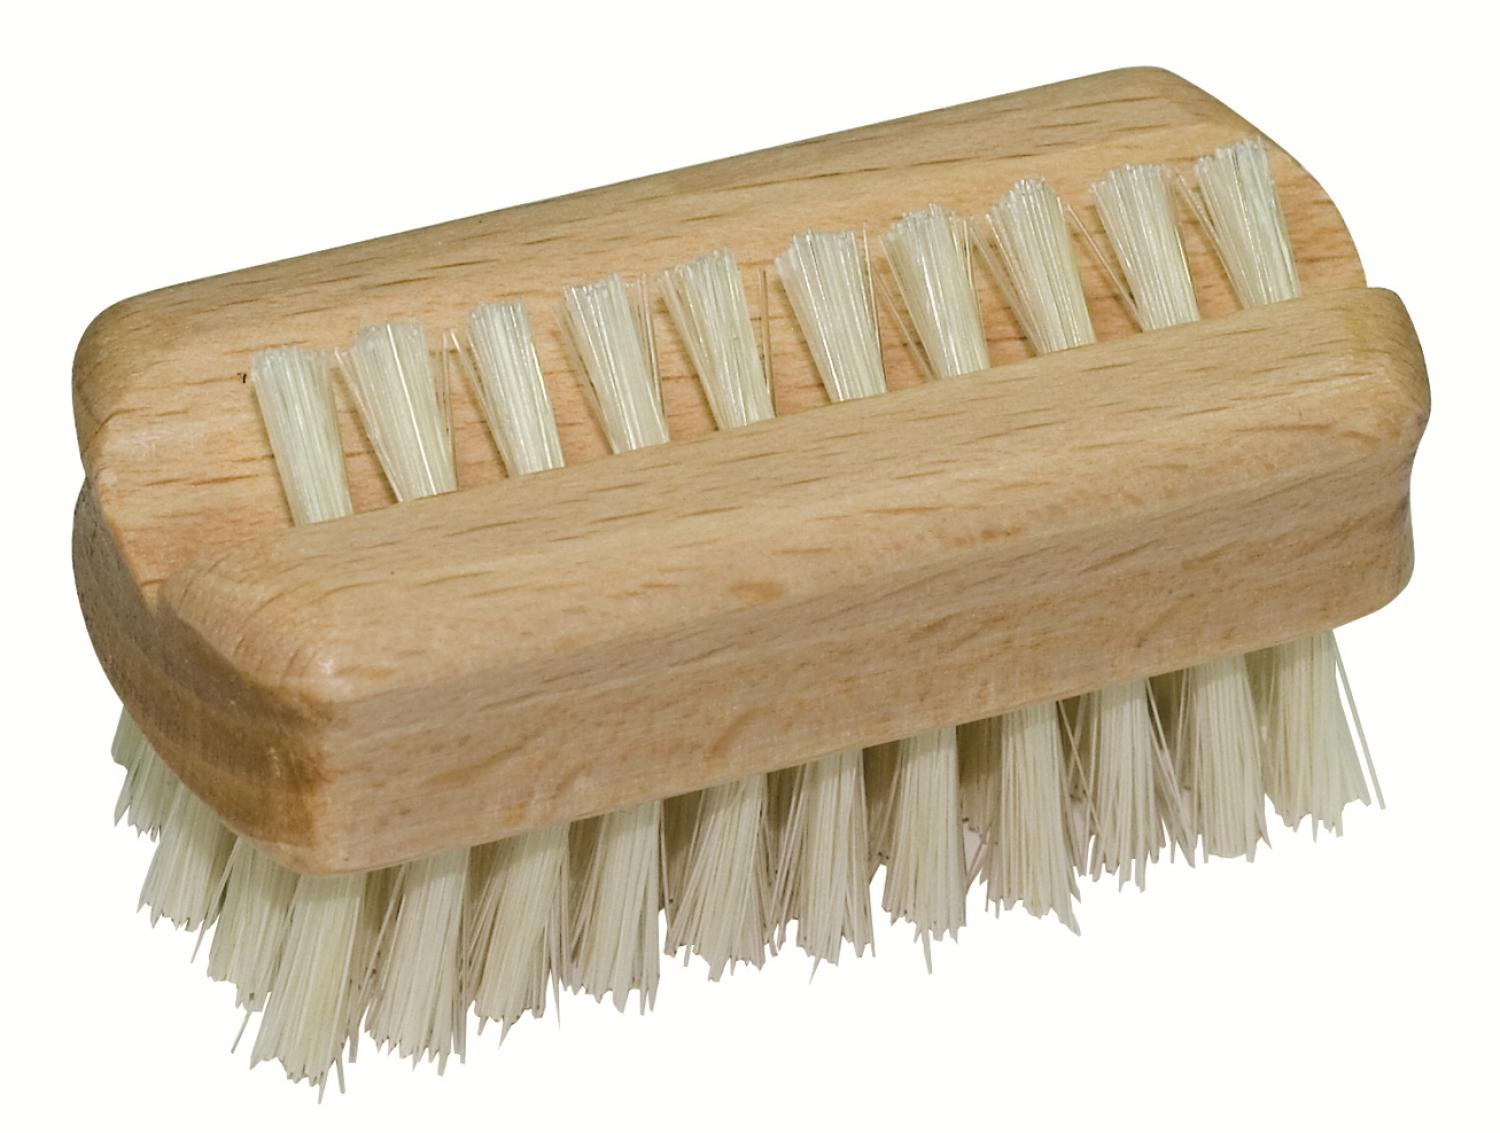 Beech Travel Nail Brush with upper row